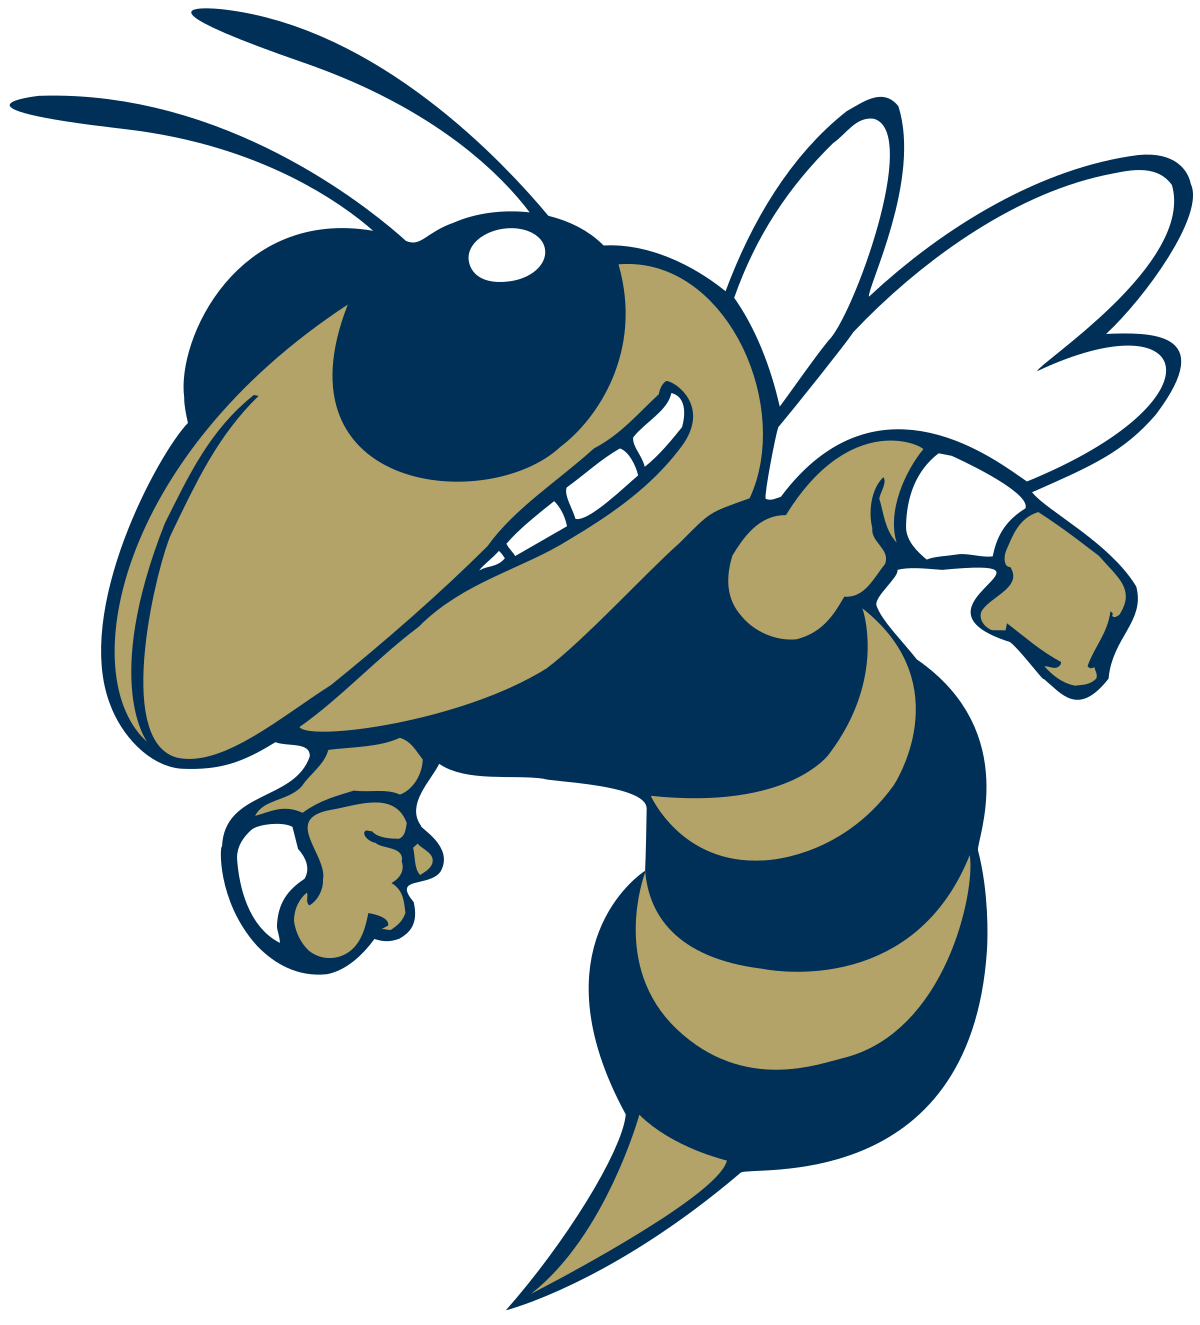 Wasp vector svg. Buzz mascot wikipedia